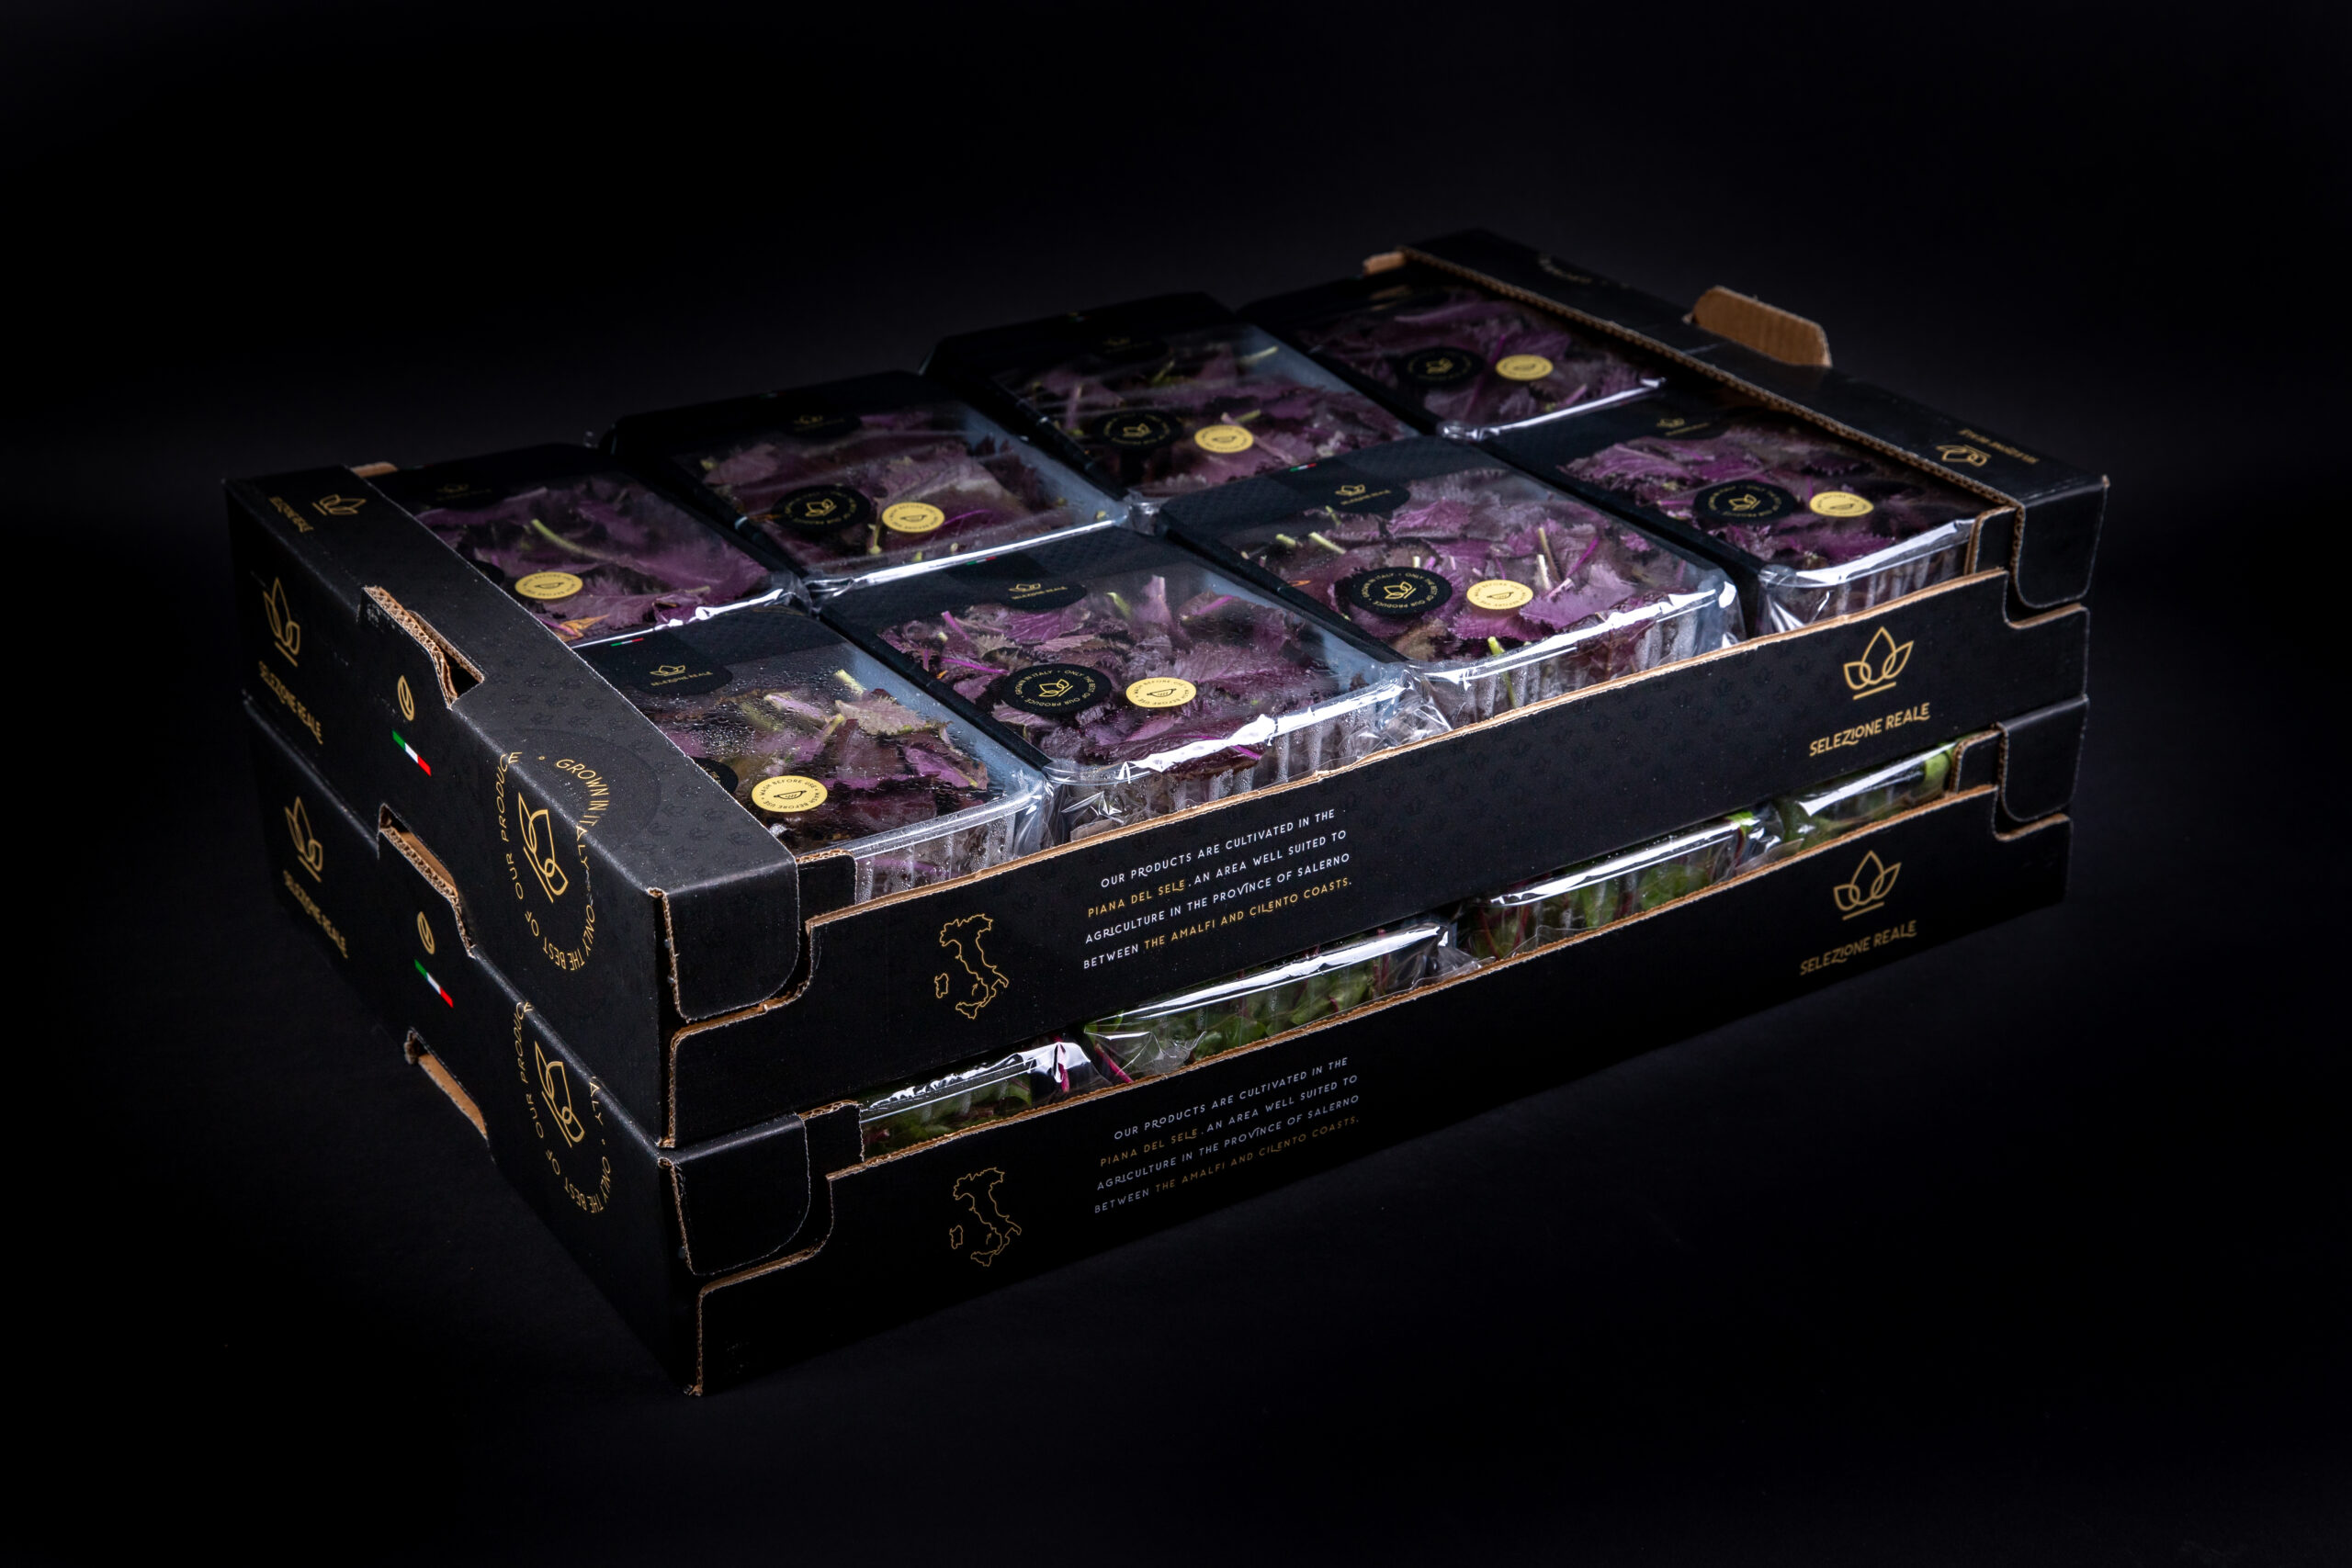 Selezione Reale packaging